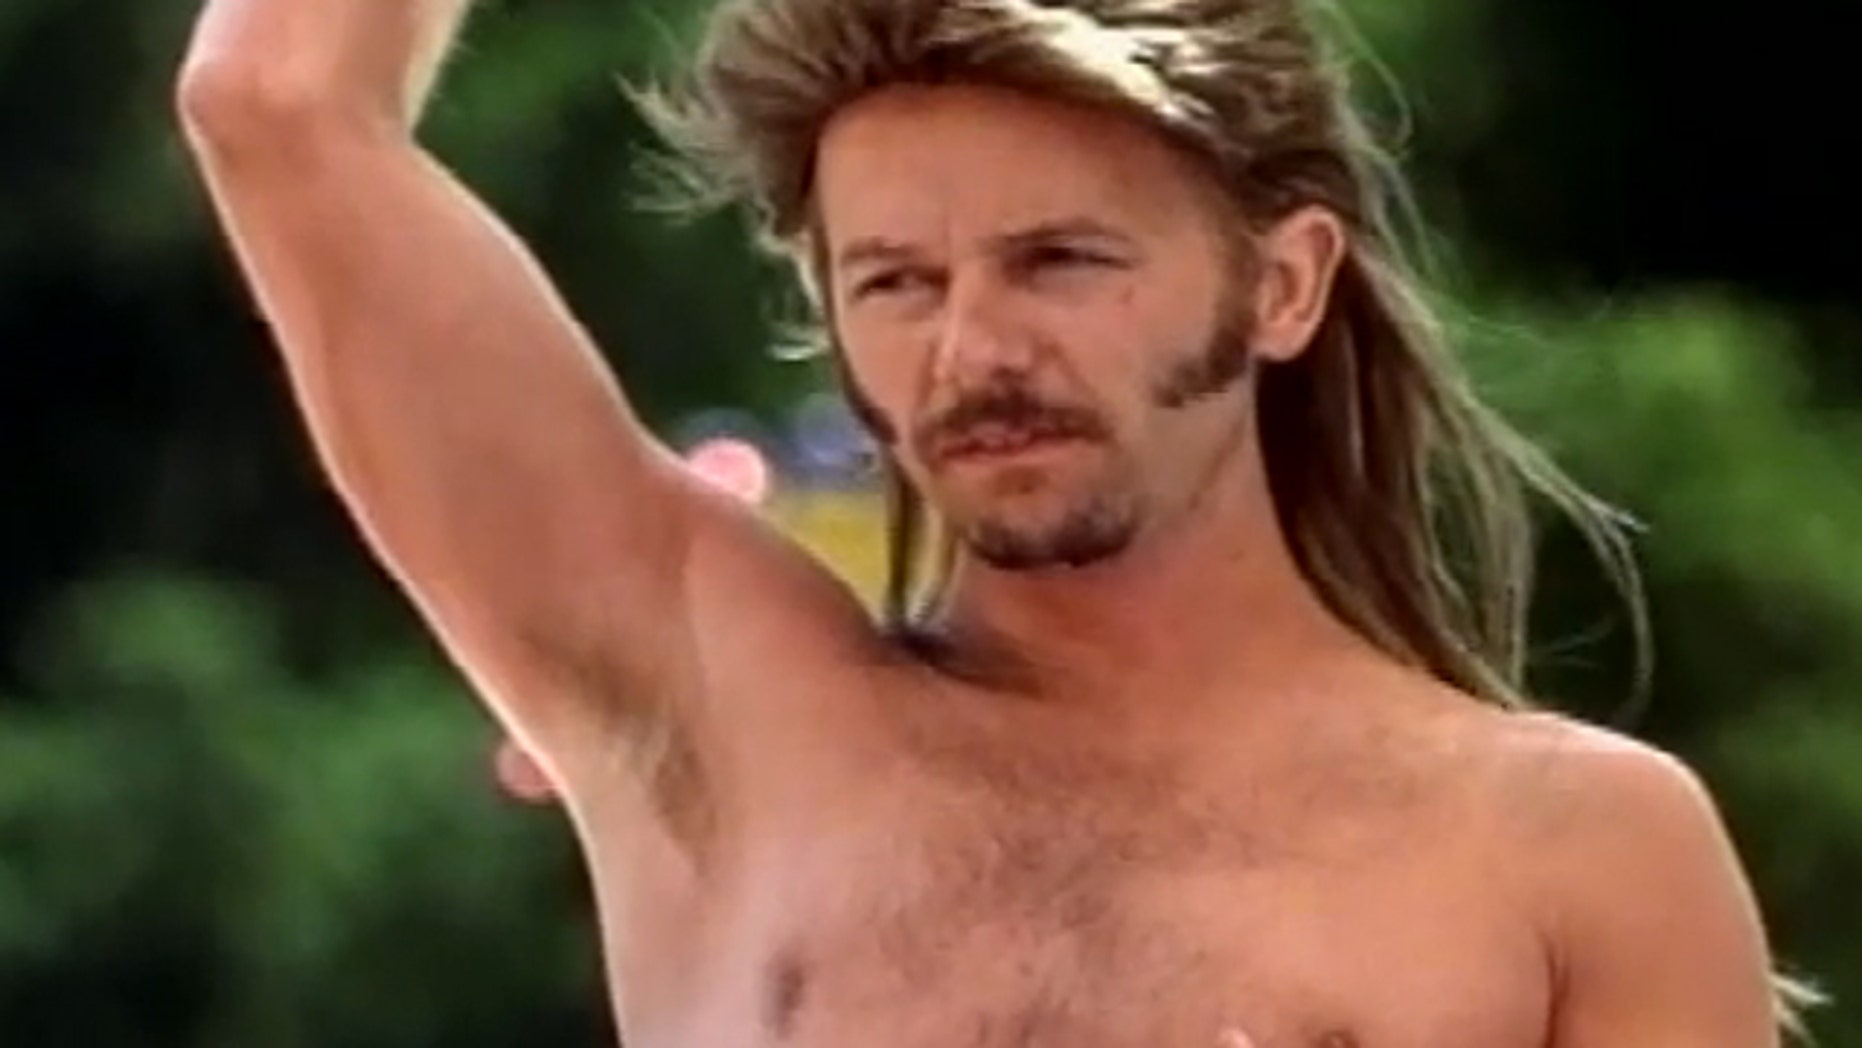 Mullets (like Joe Dirt's), ponytails and rattails are all turnoffs for most women.